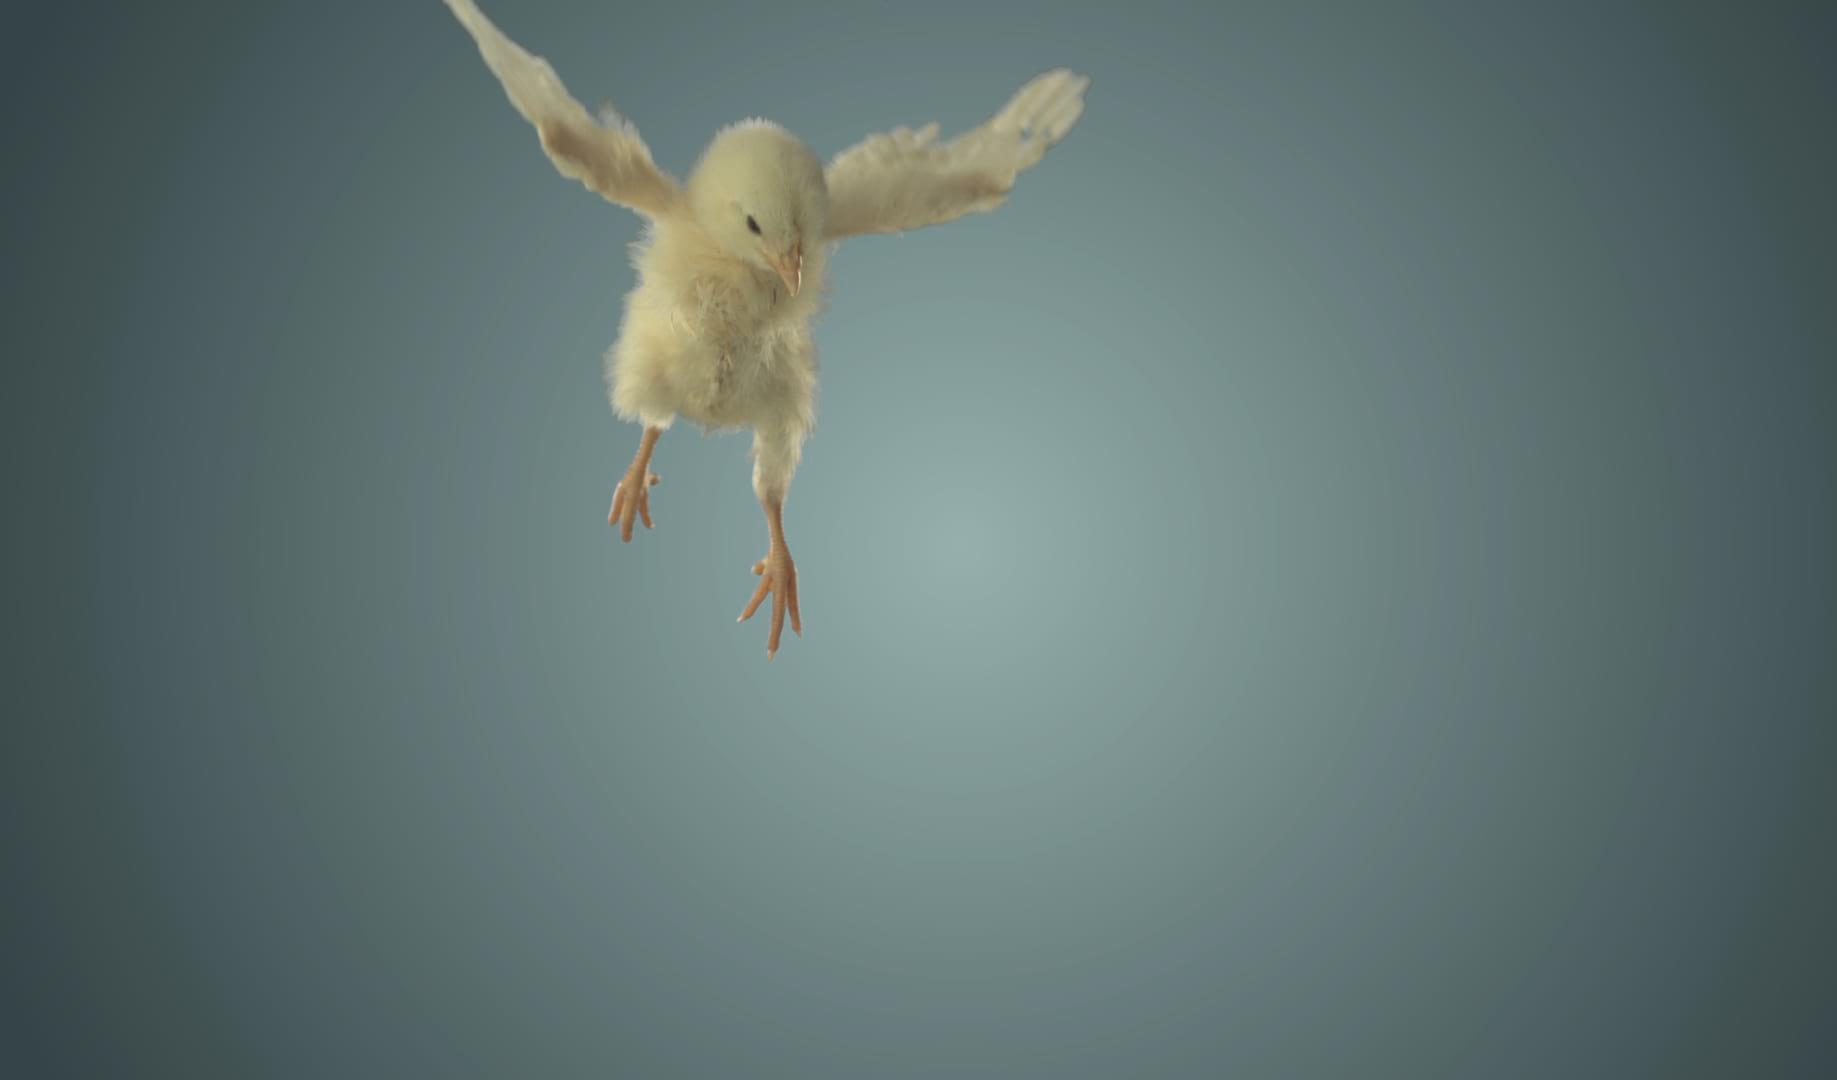 peta – flying chicks